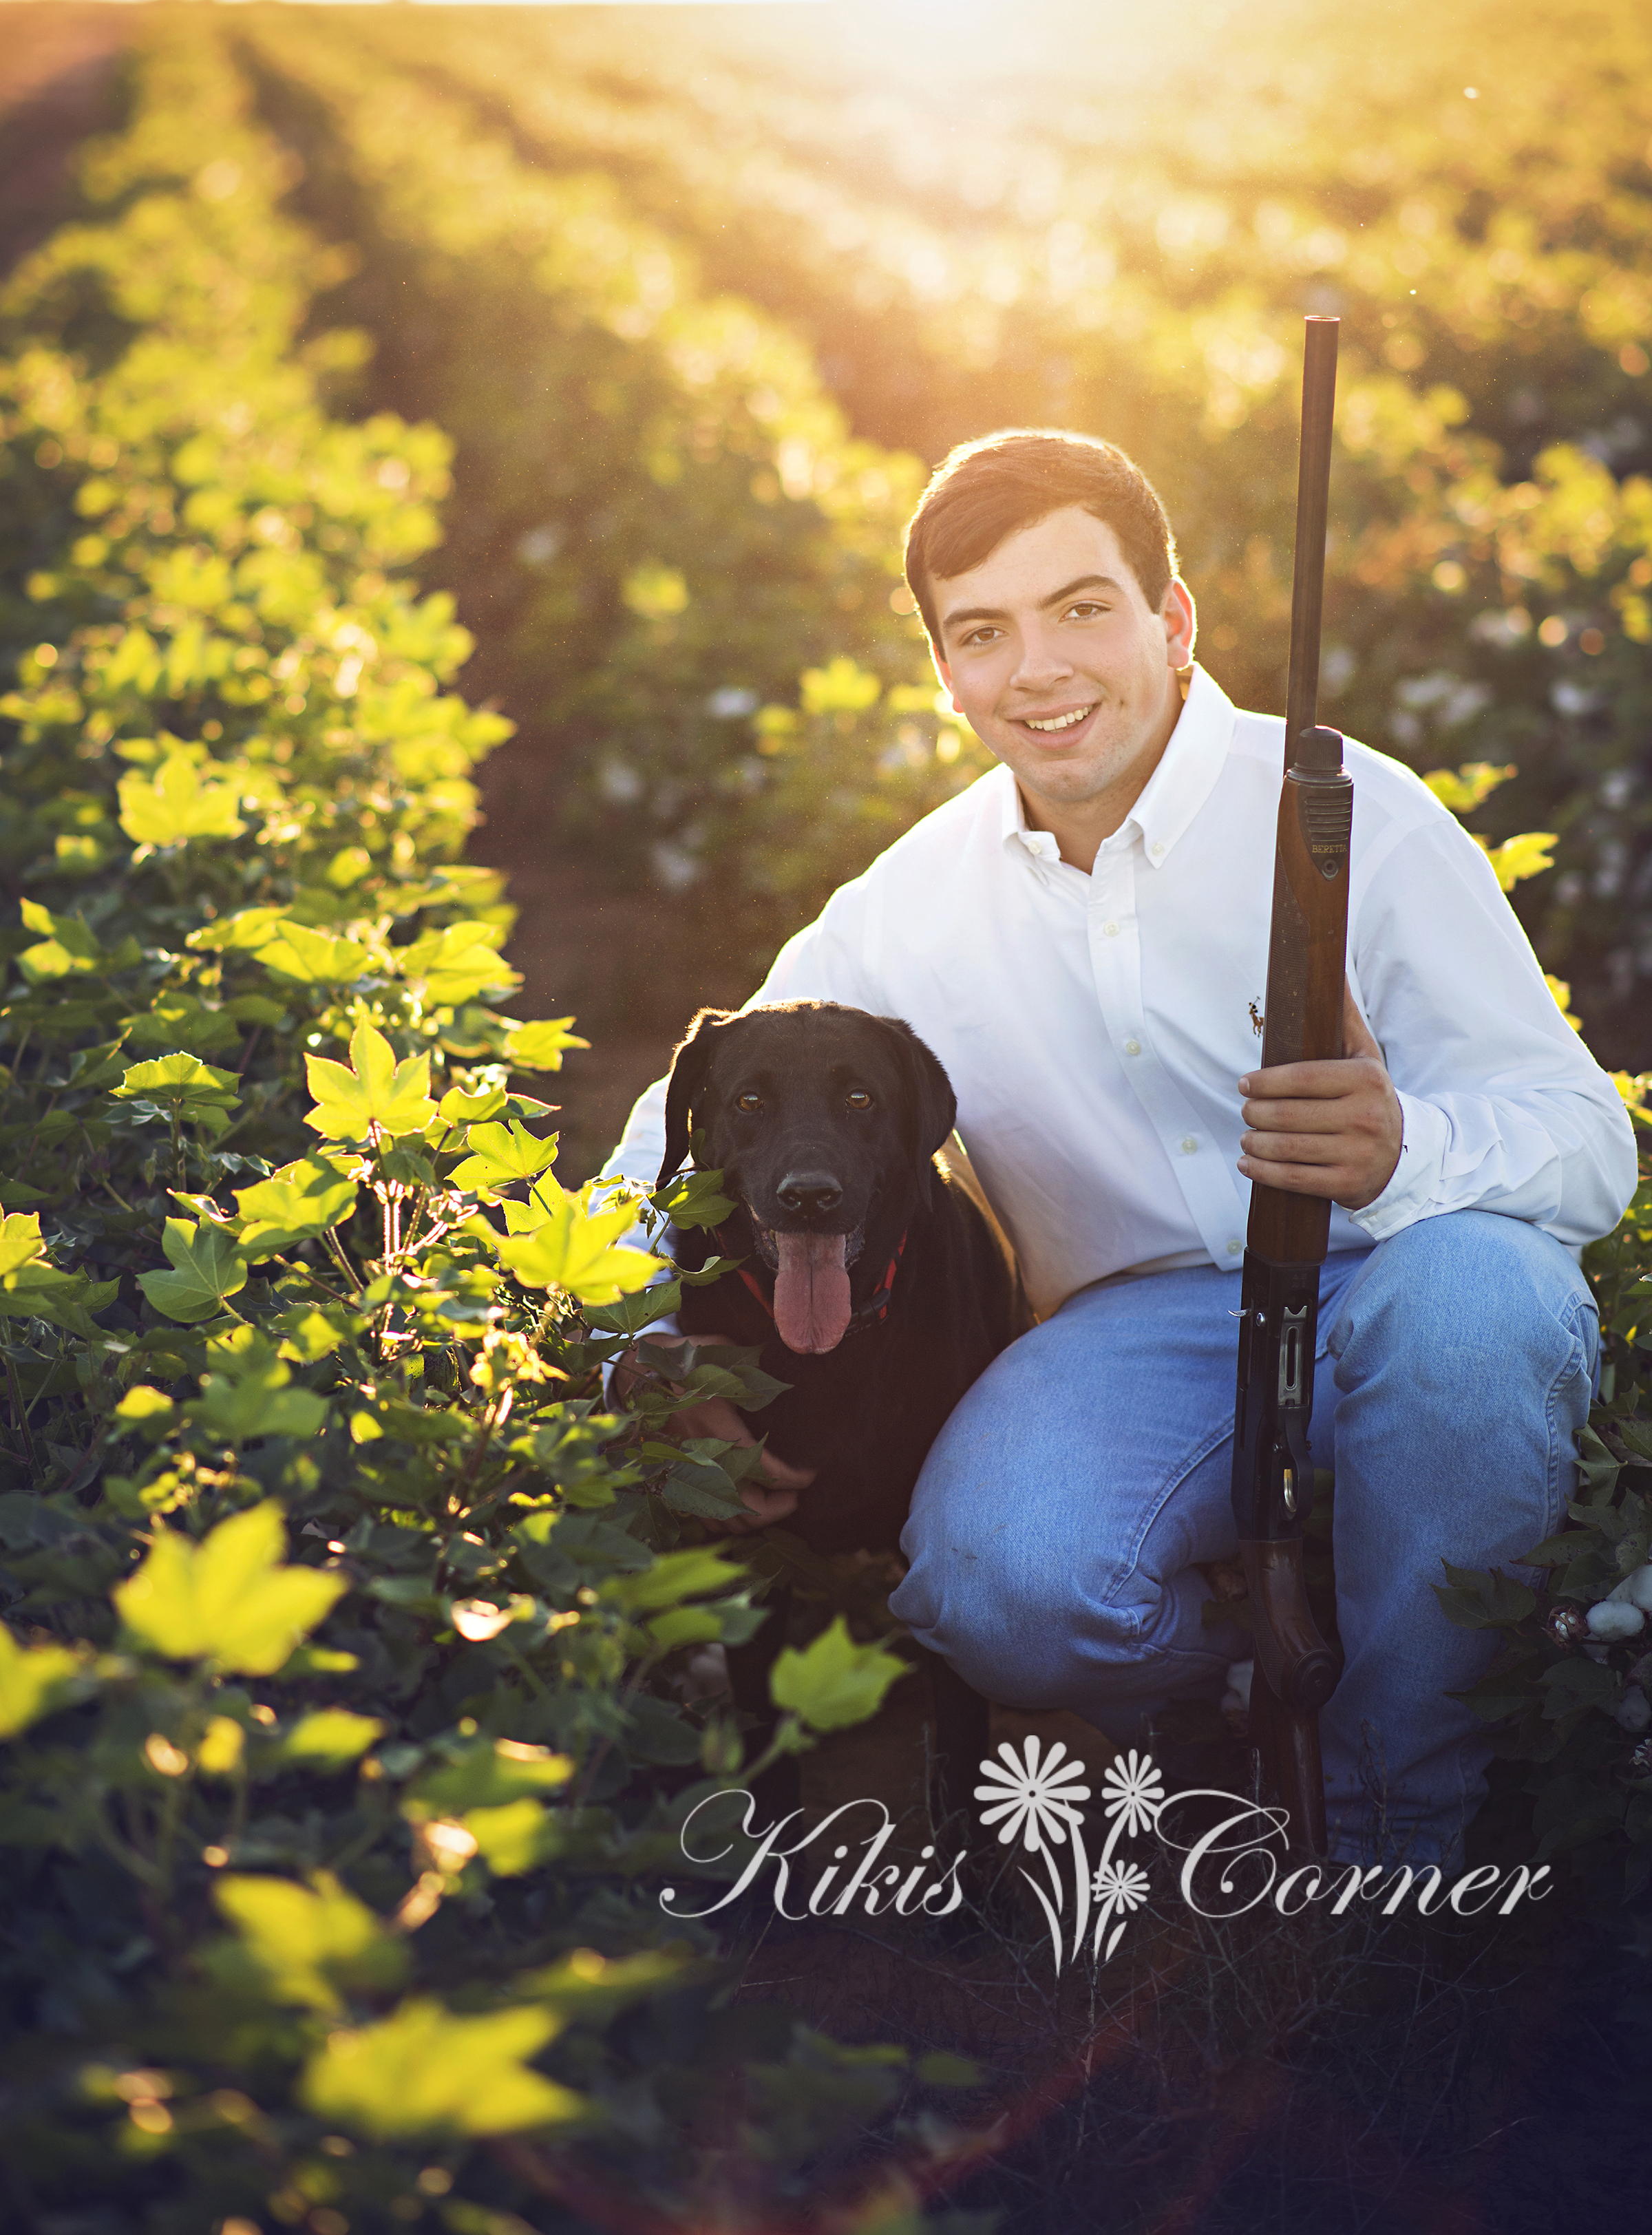 Midland Trinity Senior, field images, labrador retriever